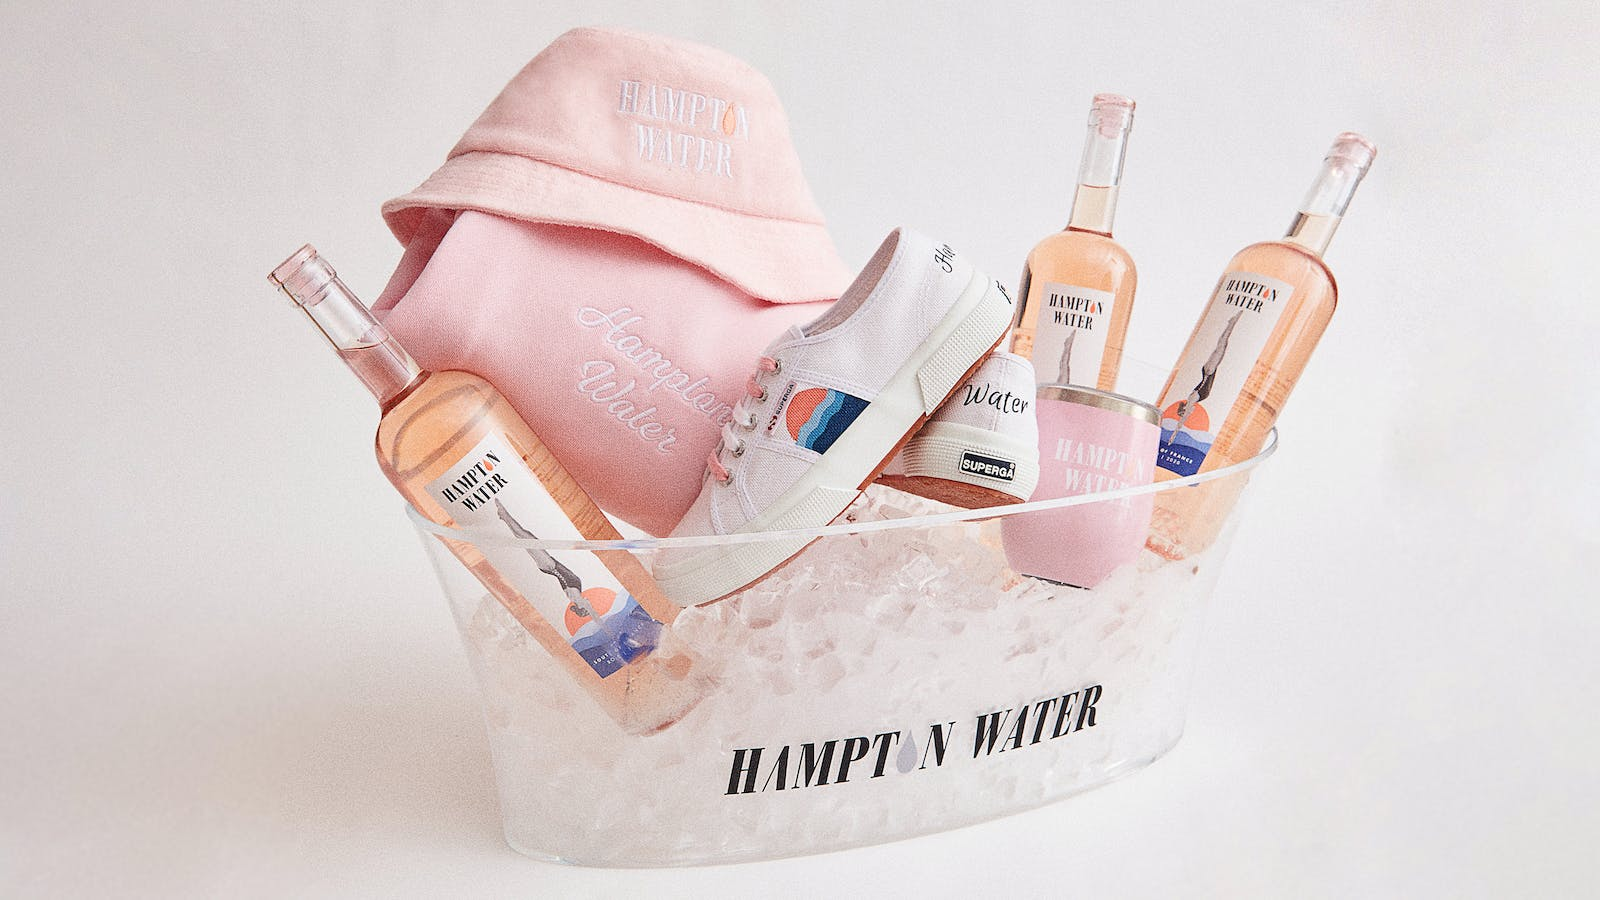 Walking on Hampton Water: Italy's Superga Collabs with Bon Jovi and Son's French Rosé